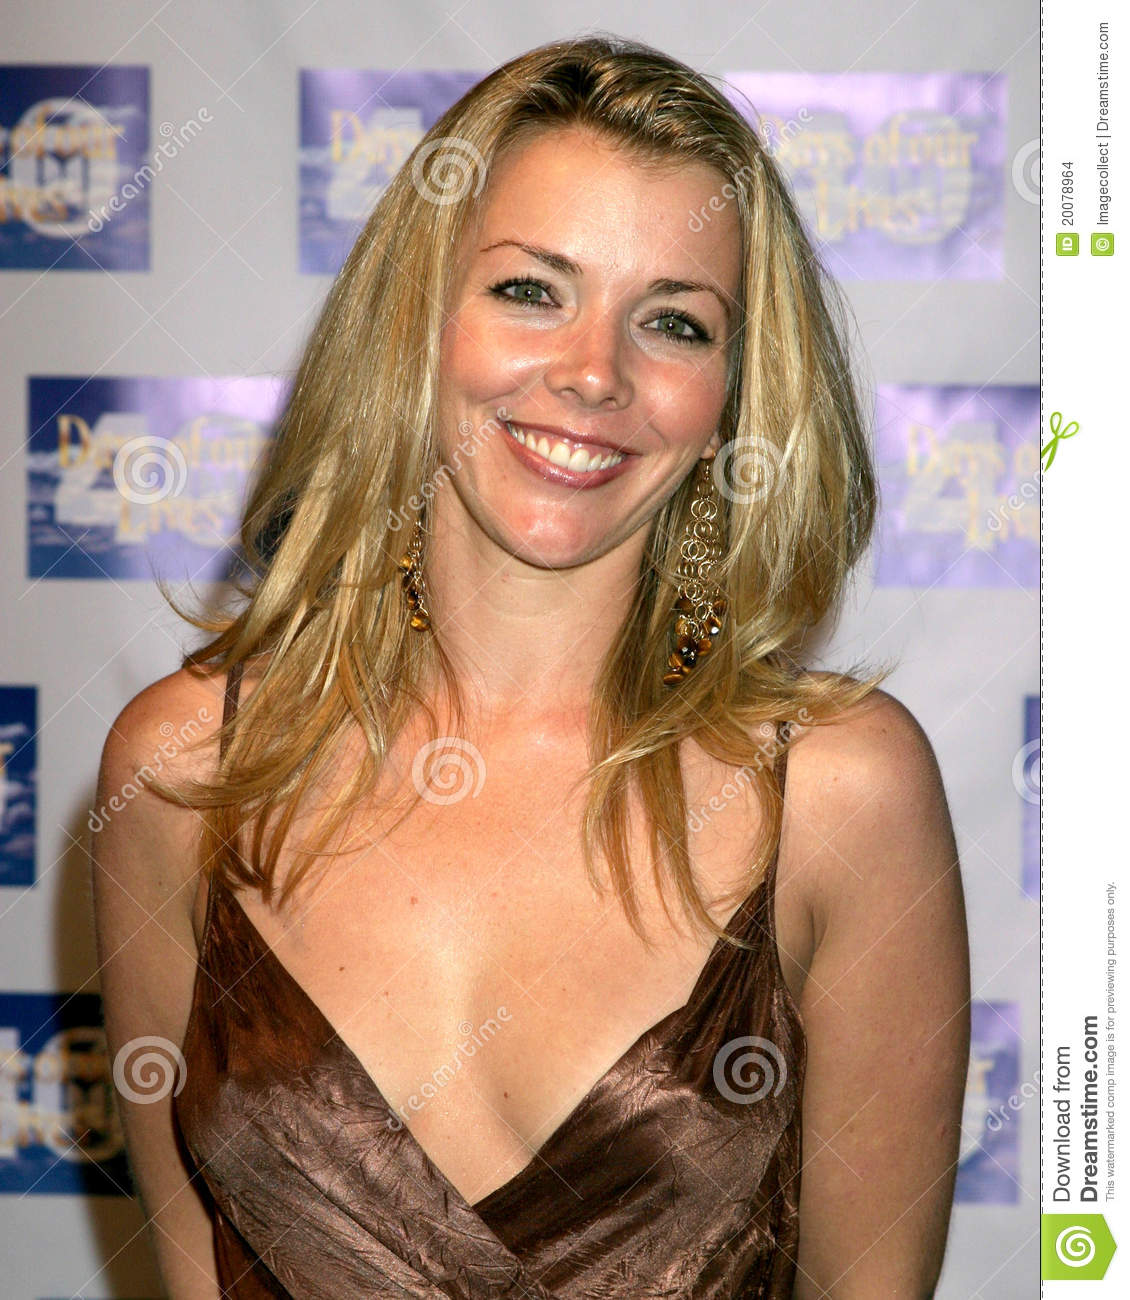 christie clark photoschristie clark photos, christie clark, christie clark actress, christie clark bc, christie clark days of our lives, christie clark twitter, christie clark yoga, christy clark hot, christie clark instagram, christy clark news, christie clark feet, christie clark thomas barnes, christie clark imdb, christie clark facebook, christie clark pwc, christie clark and wallace, christy clark images, christie clark cleavage, christy clark miley cyrus